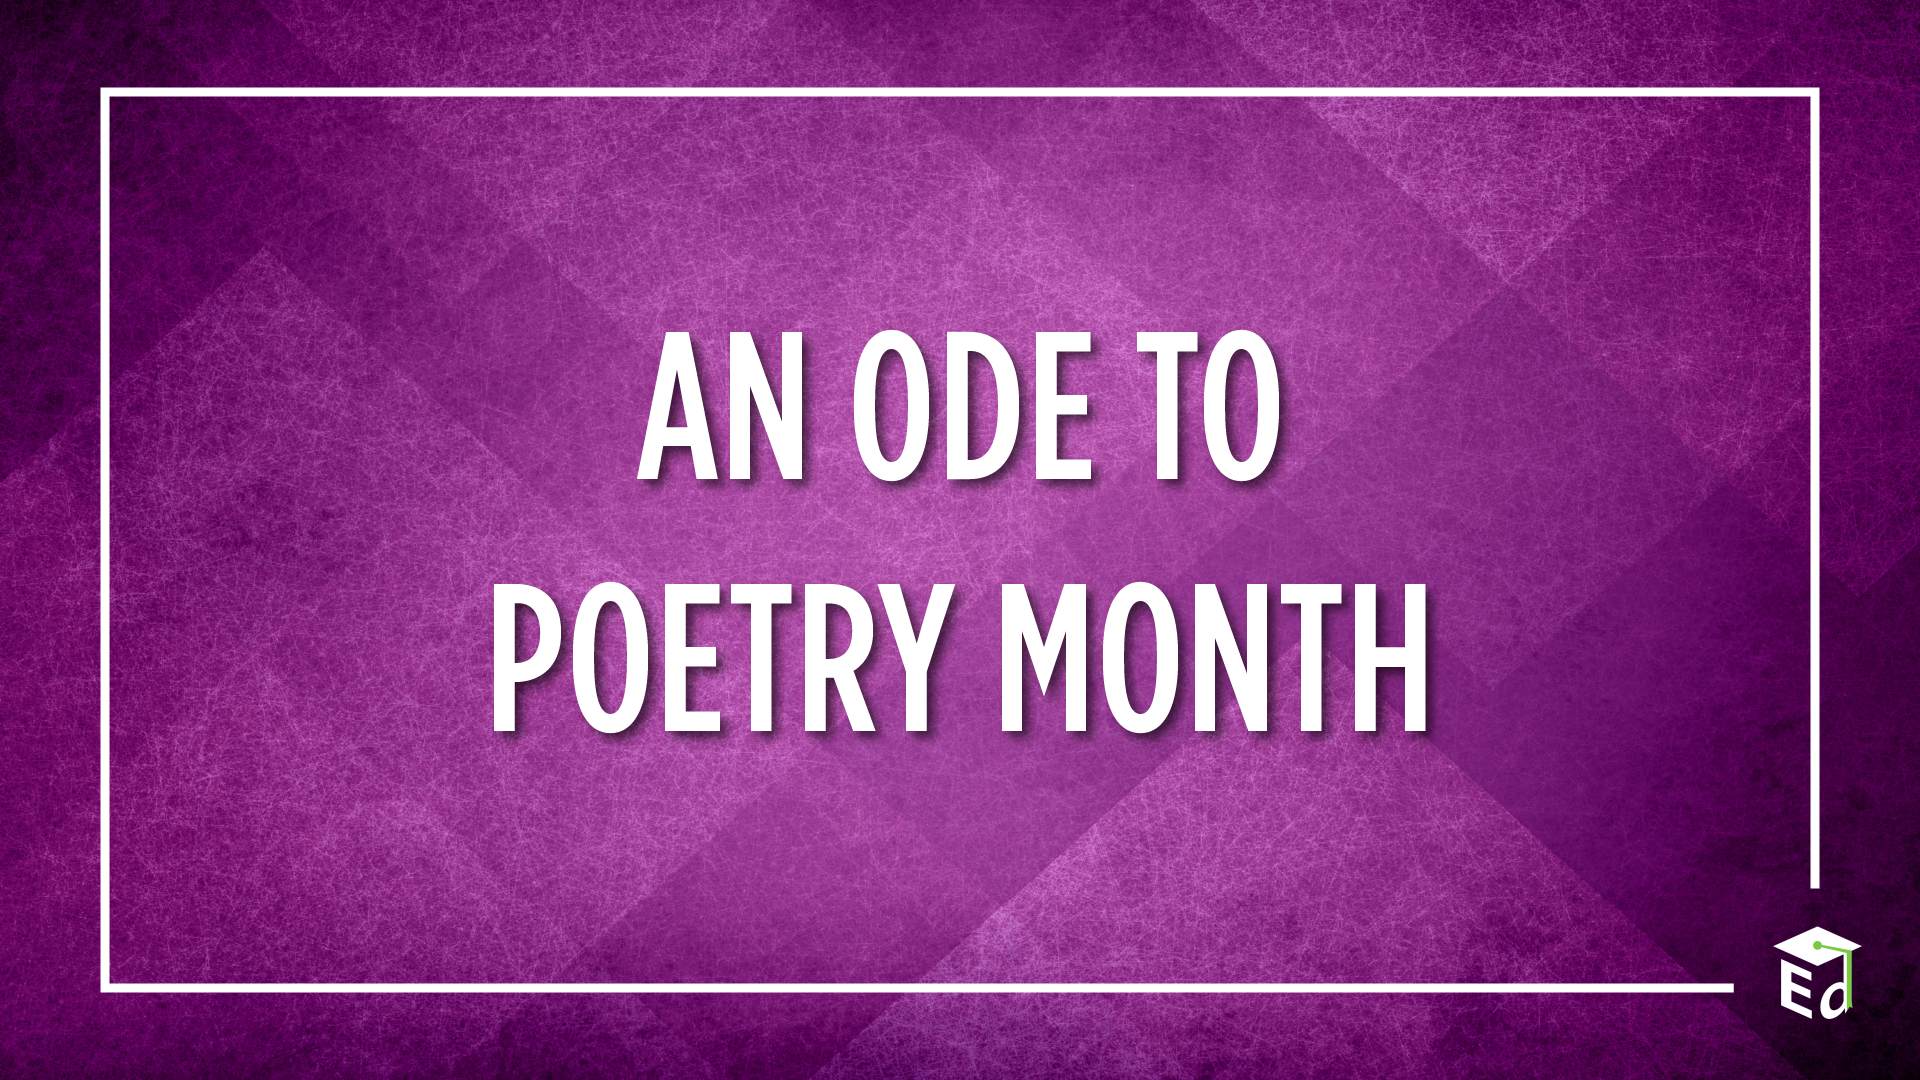 an ode to poetry month